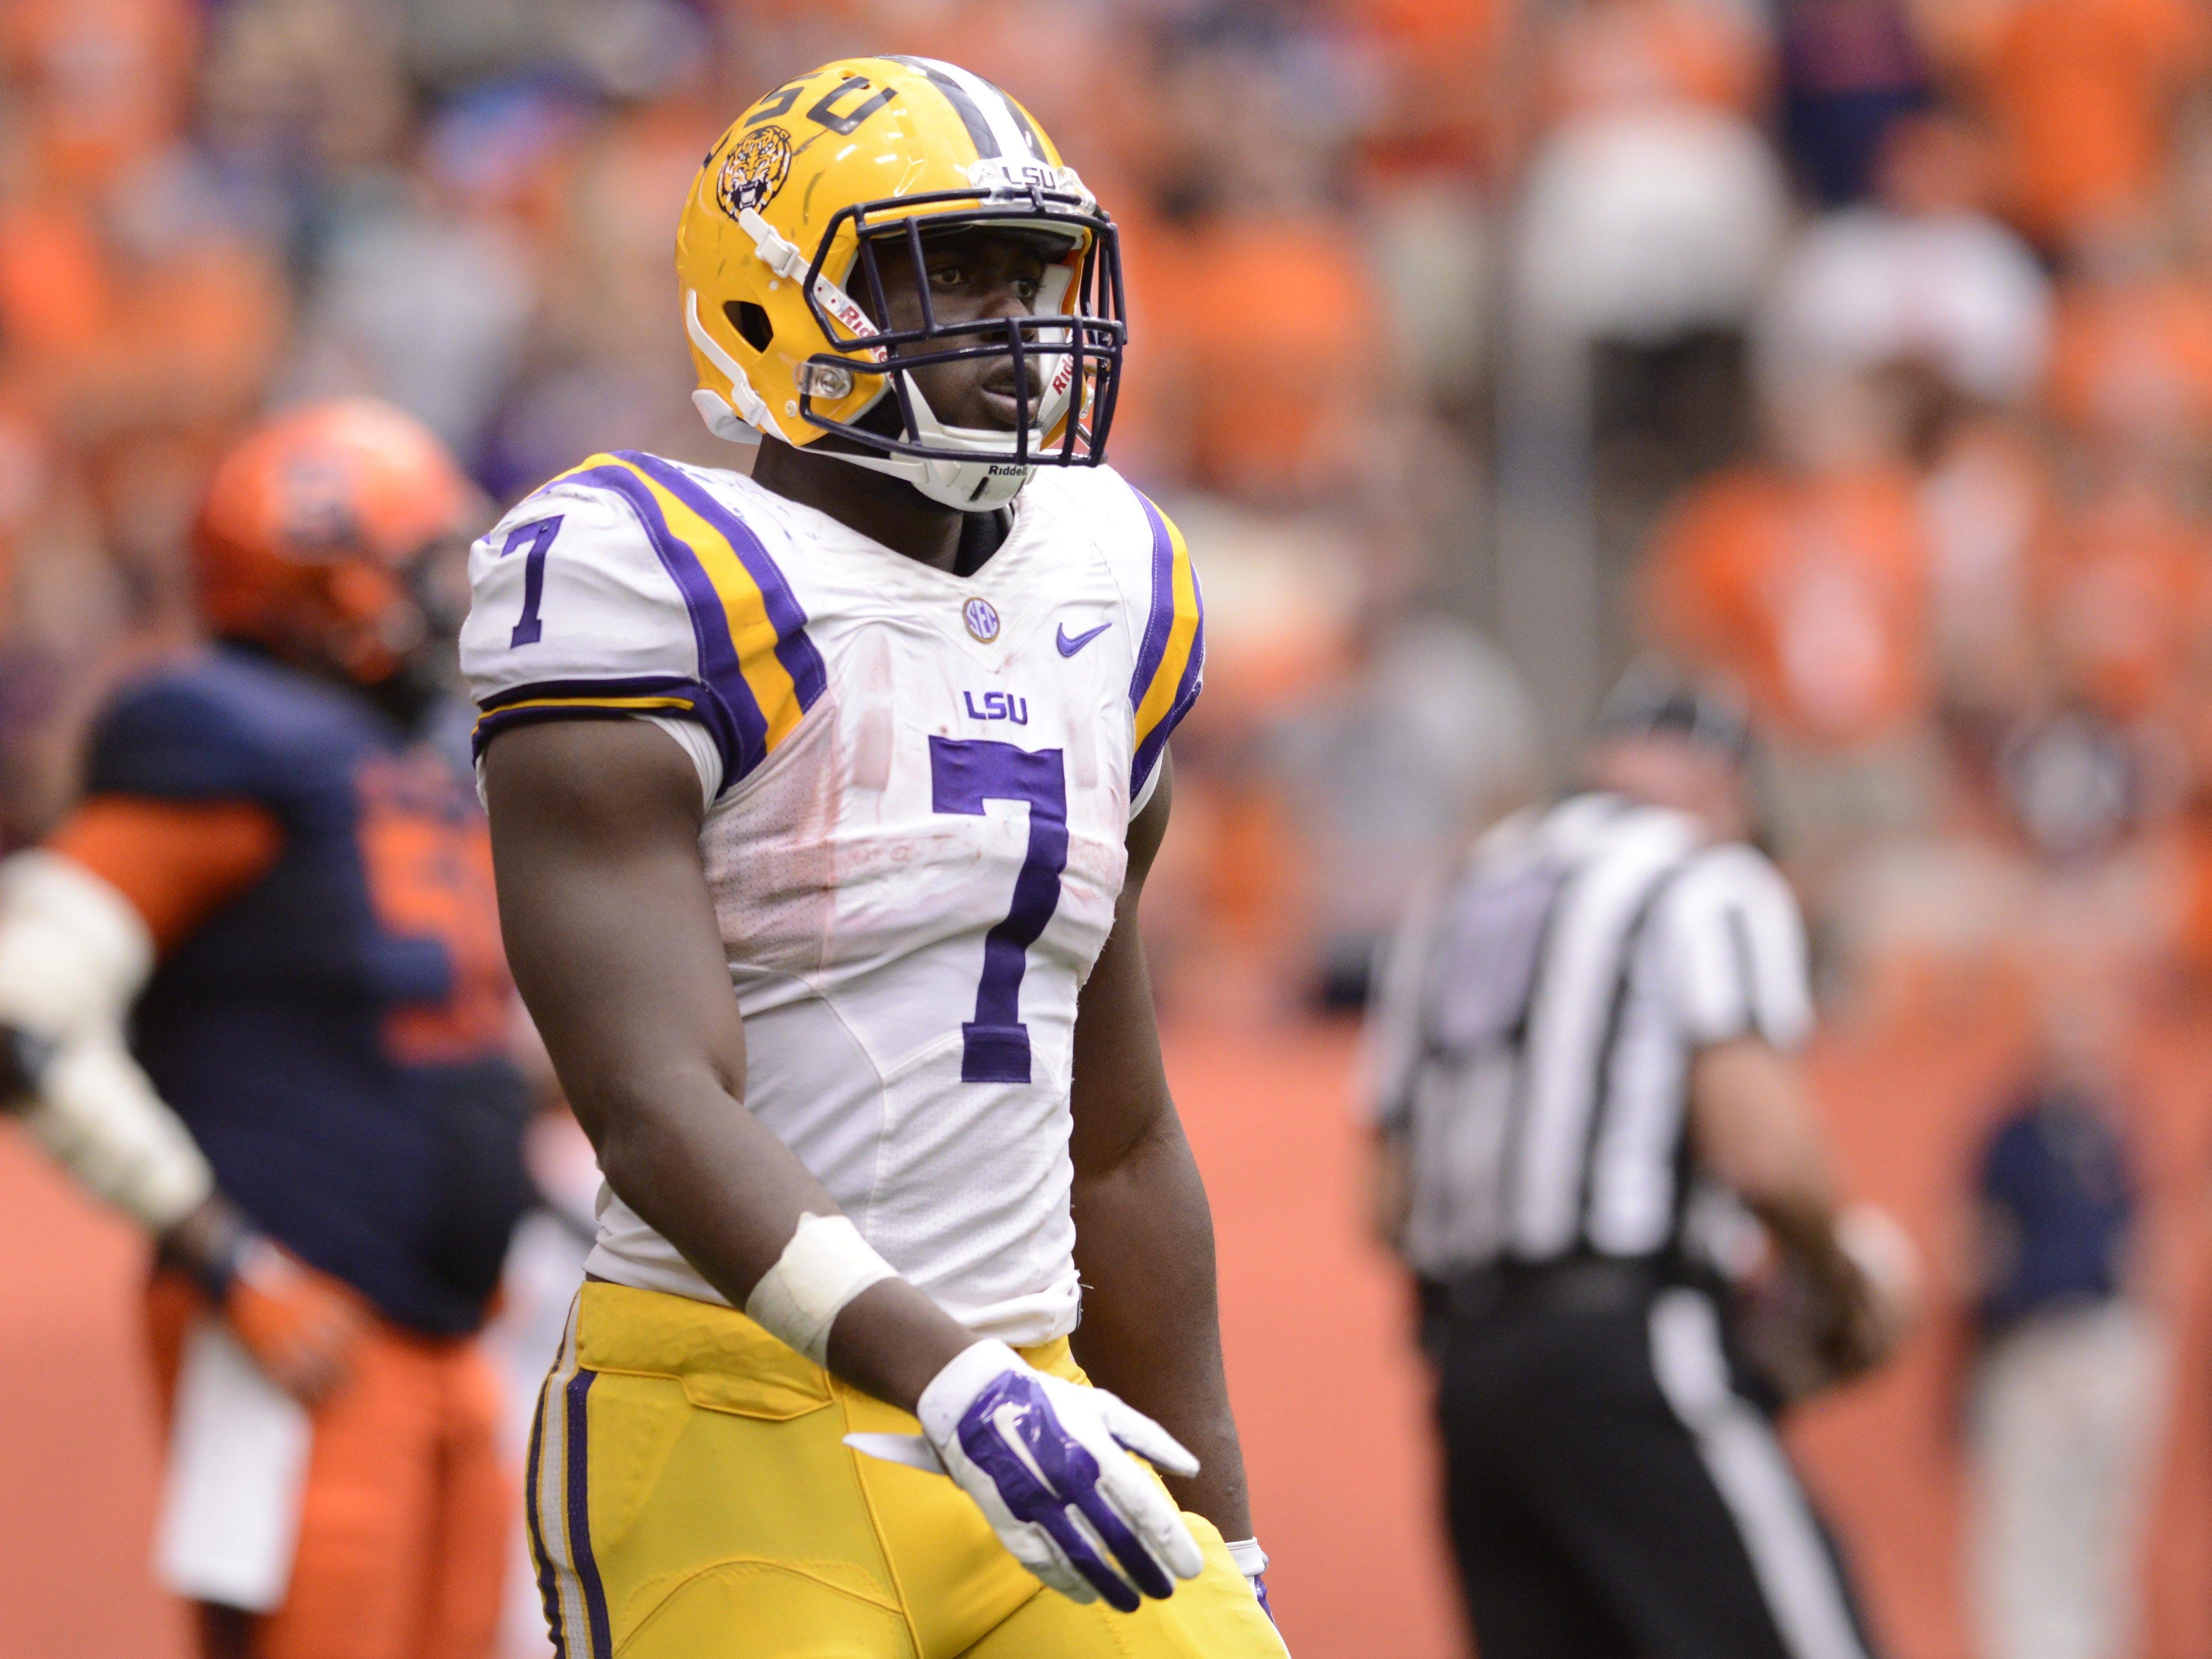 LSU running back Leonard Fournette (7) leads FBS in rushing yards per game, averaging 216 in four games.